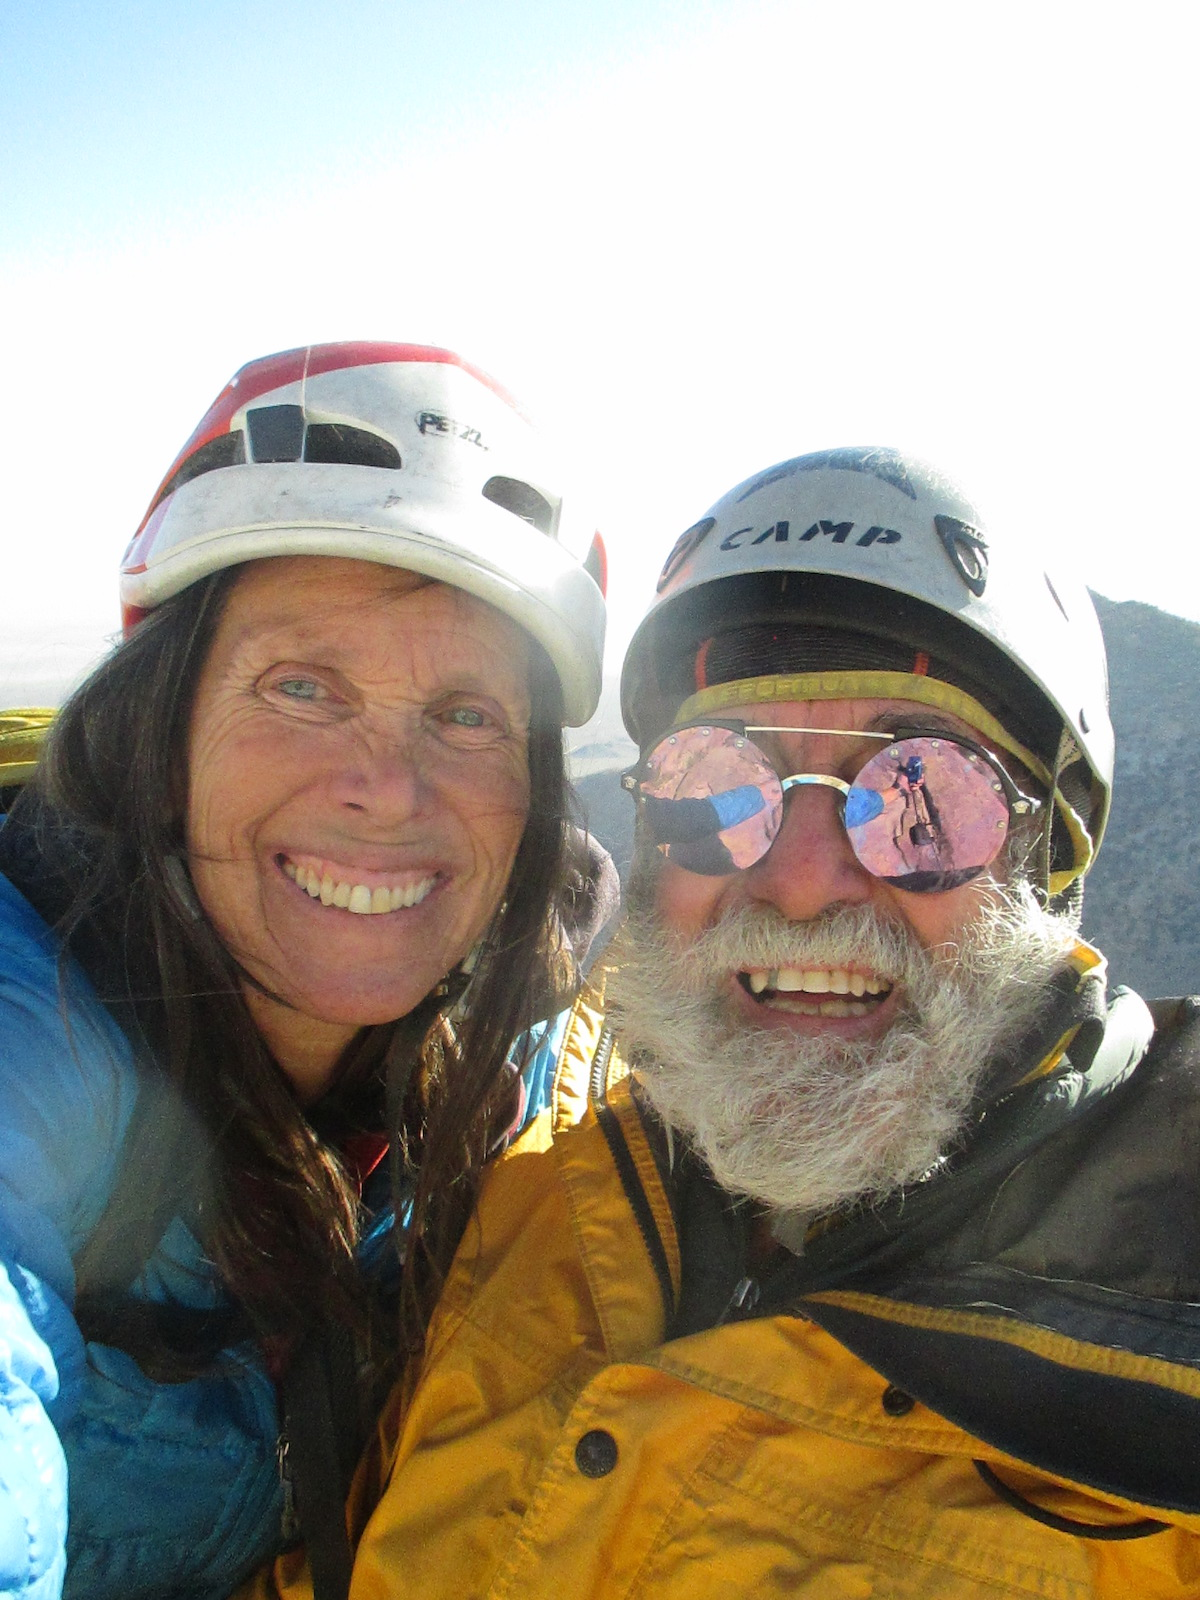 Joanne and Jorge Urioste after completing yet another first ascent, 2019. [Photo] Courtesy of the American Alpine Club